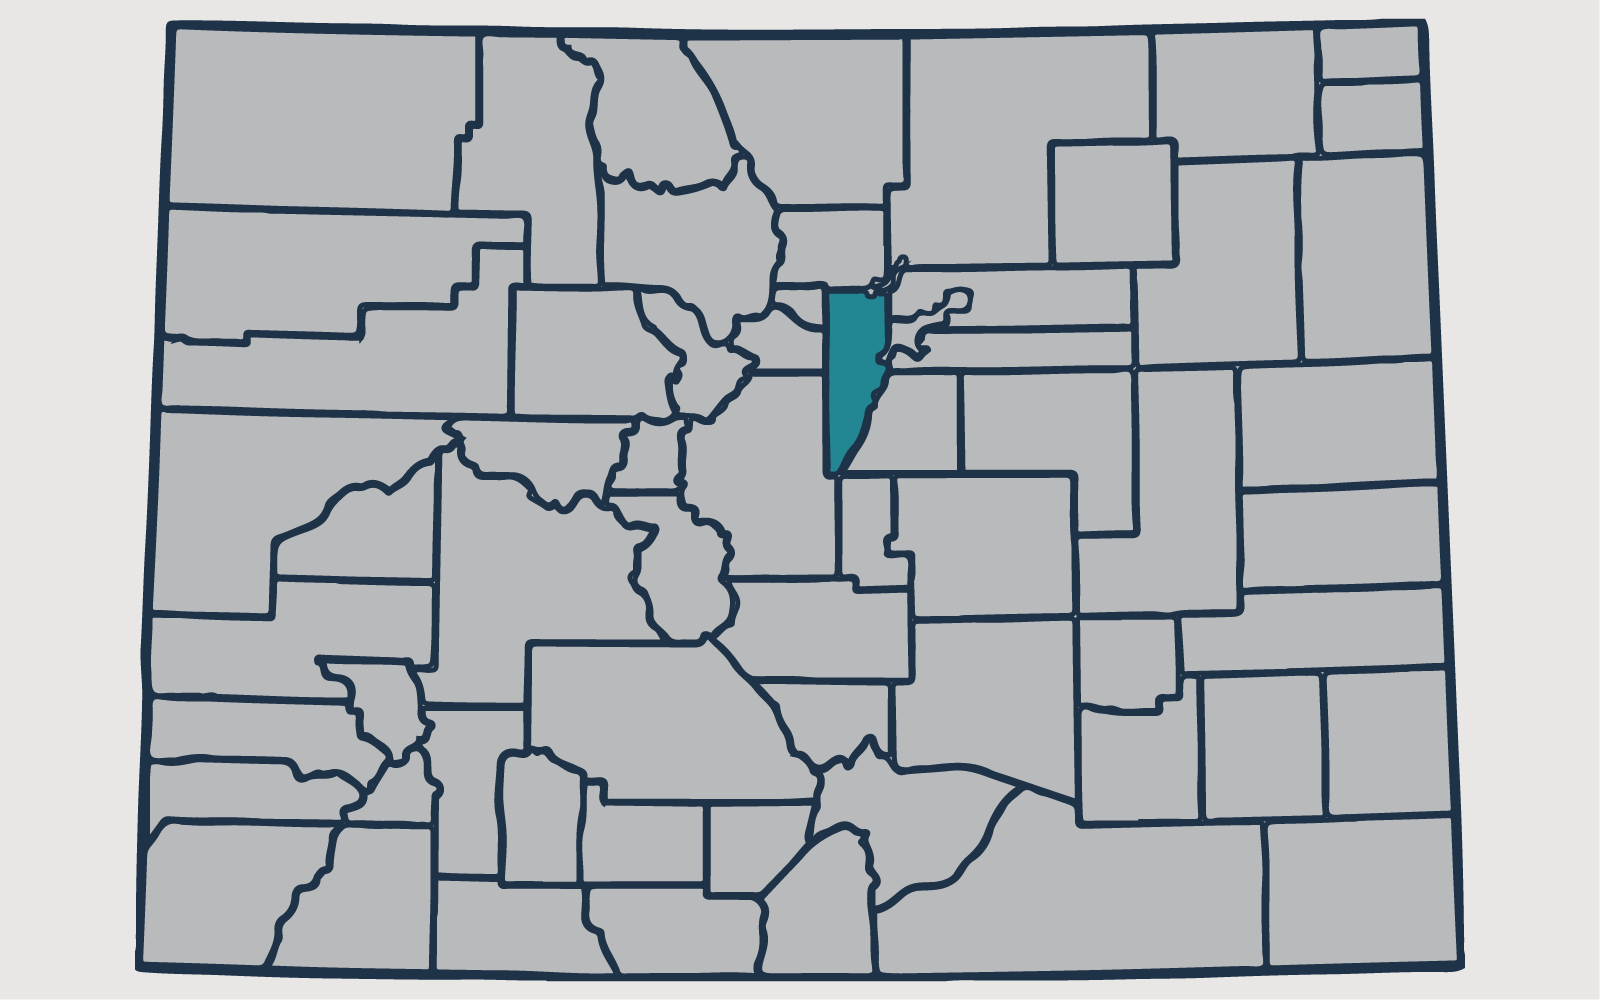 JEFFERSON COUNTY, Colorado - Your health and satisfaction are important to us. We are located in Littleton, Colorado and are pleased to provide our professional, honest, and affordable radon testing and mitigation services to happy and satisfied customers all along the front range of our beautiful State of Colorado.